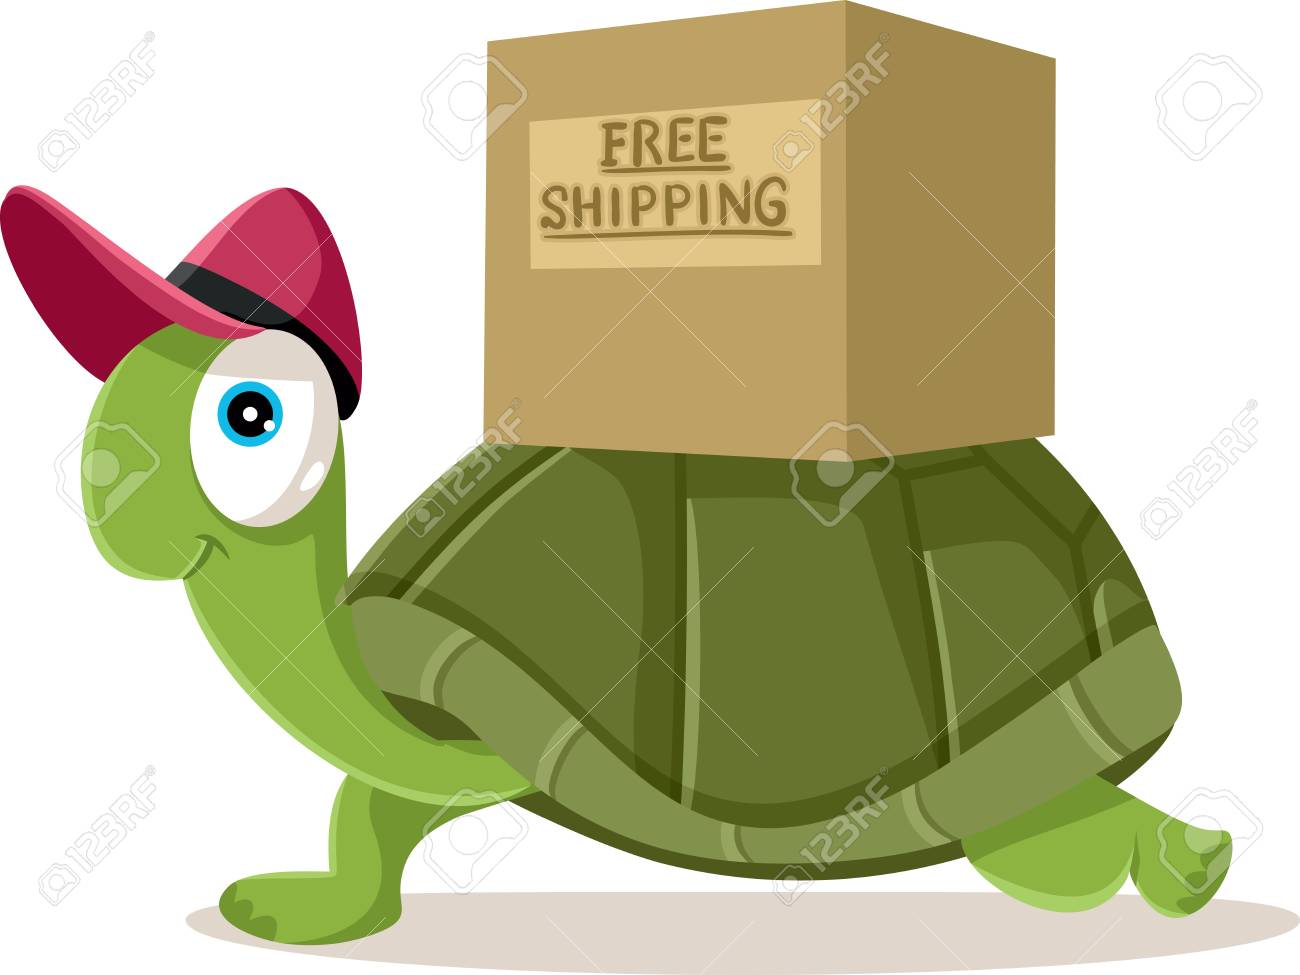 Funny Courier Turtle Free Shipping Concept Vector Cartoon - 96631144